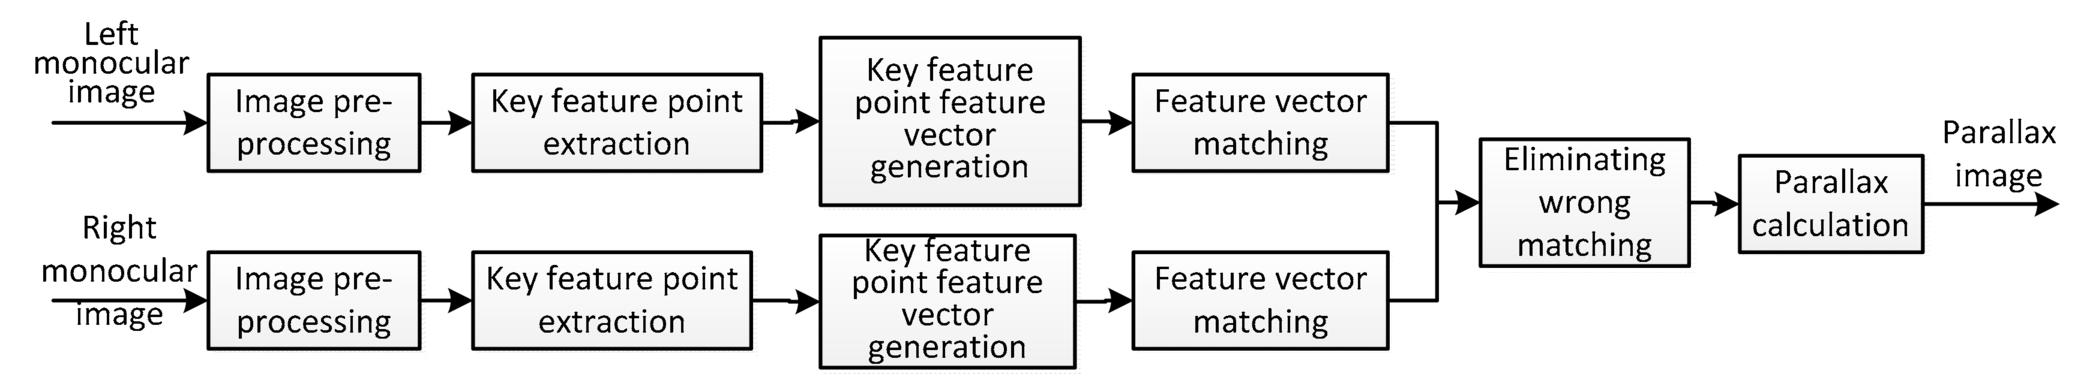 Application of SIFT feature vector matching algorithm in binocular